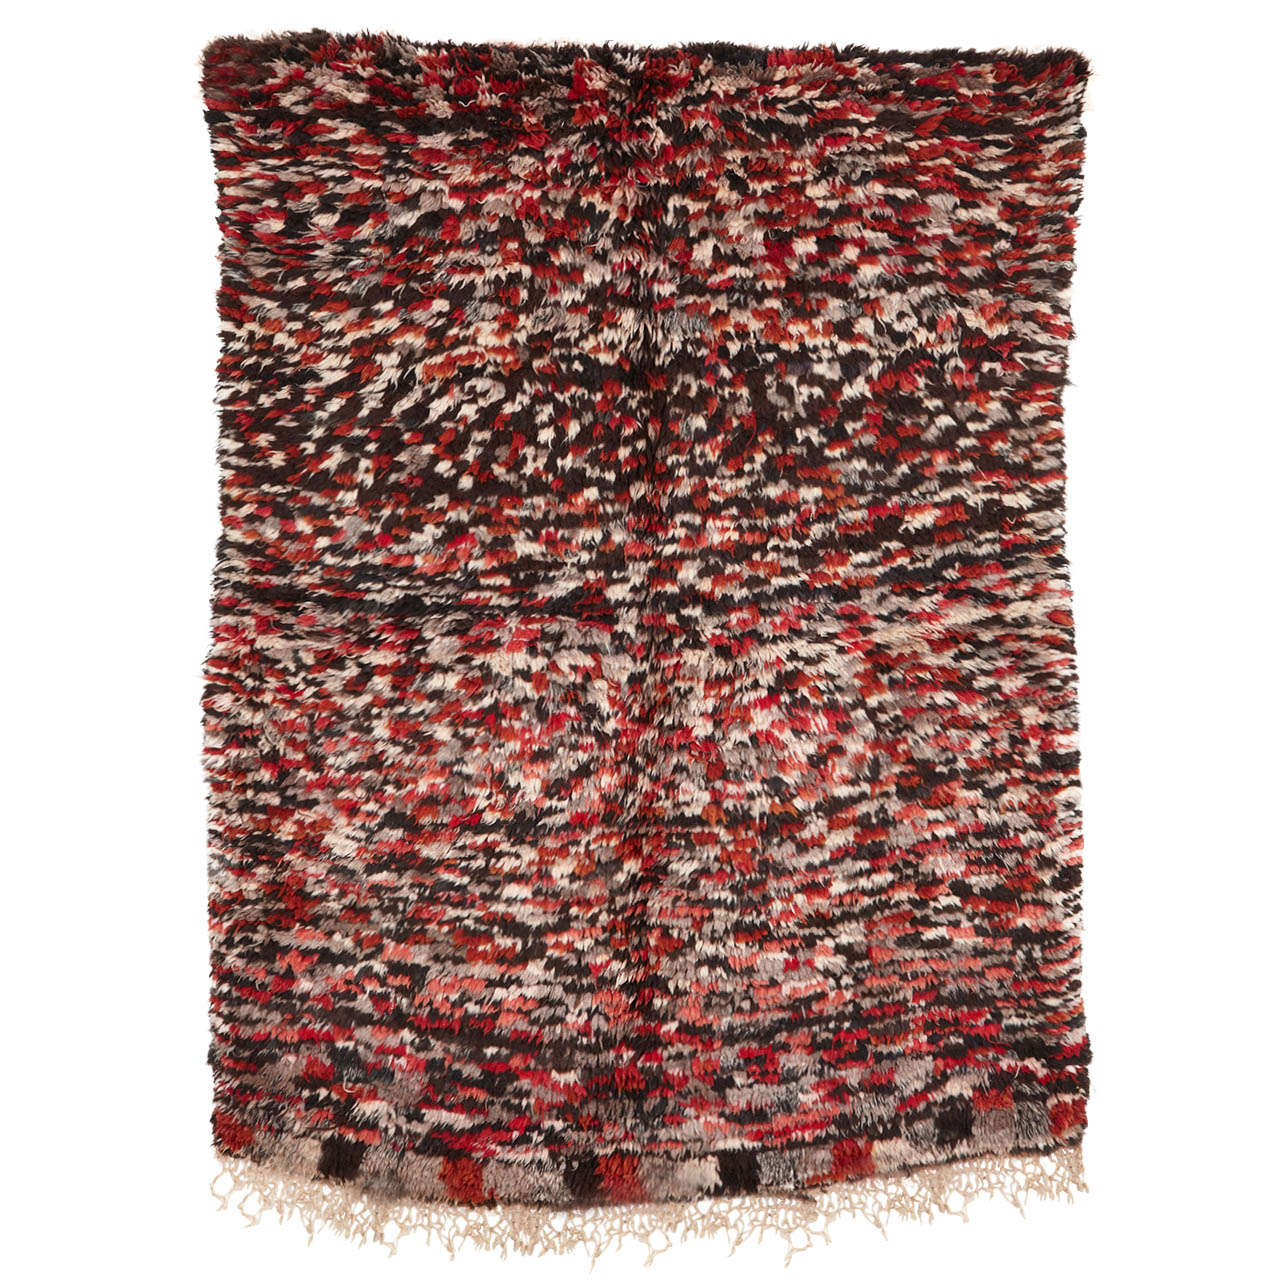 Vintage Moroccan Area Rug For Sale At 1stdibs: Vintage Azilal Abstract Moroccan Berber Rug For Sale At